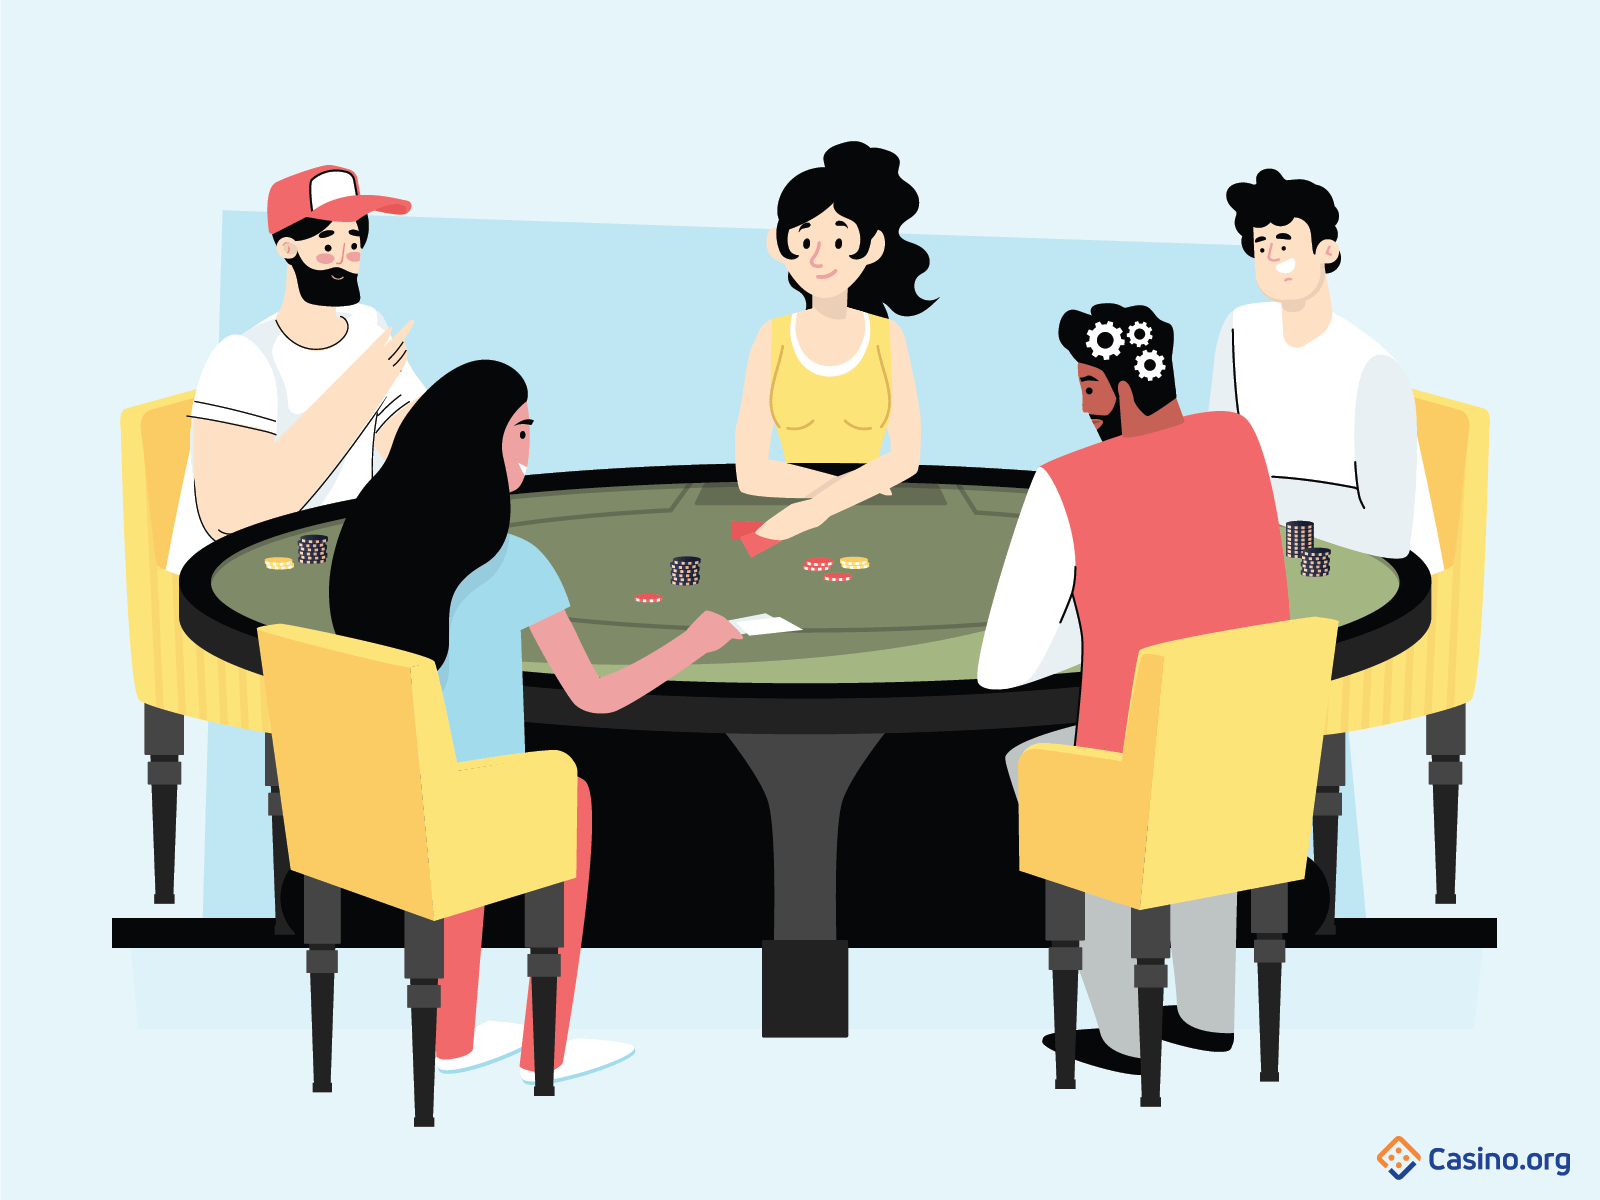 Poker players at table